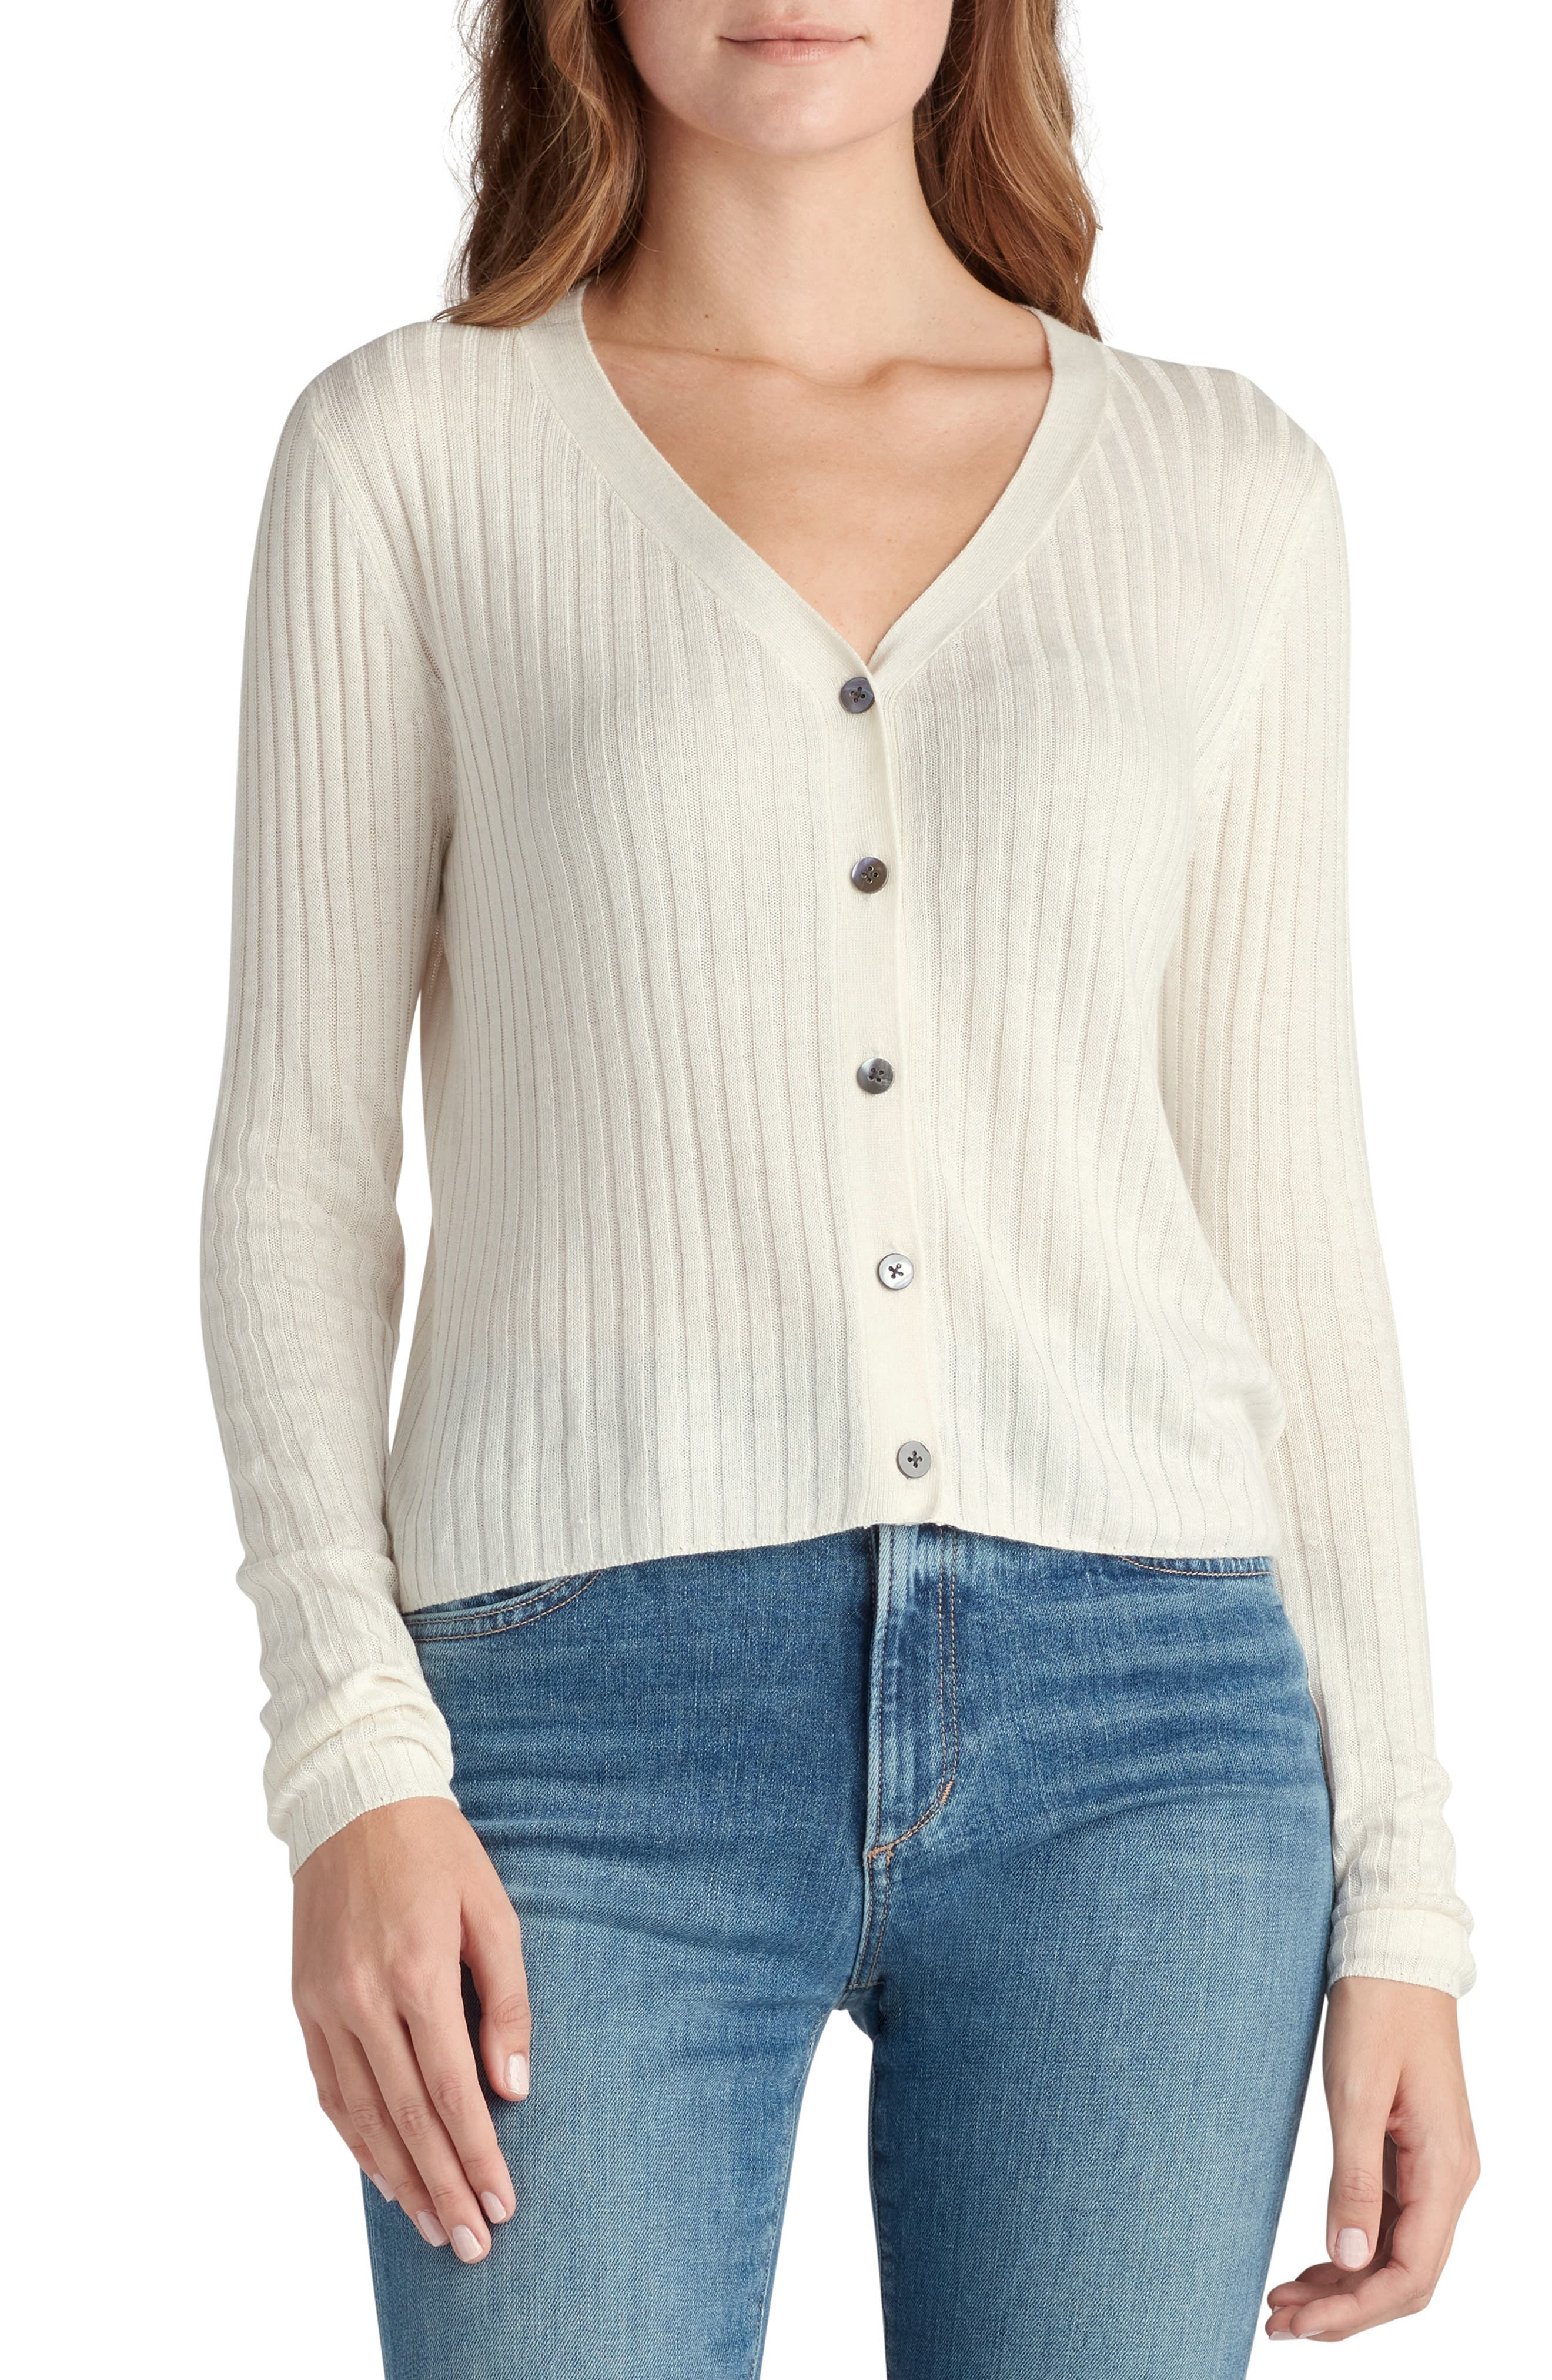 A ribbed cardigan knit from a linen-kissed yarn blend is the perfect lightweight layer for those between-season days. Style Name: Joe\\\'s The Favorite Daughter Button-Up Cardigan. Style Number: 6135566. Available in stores.